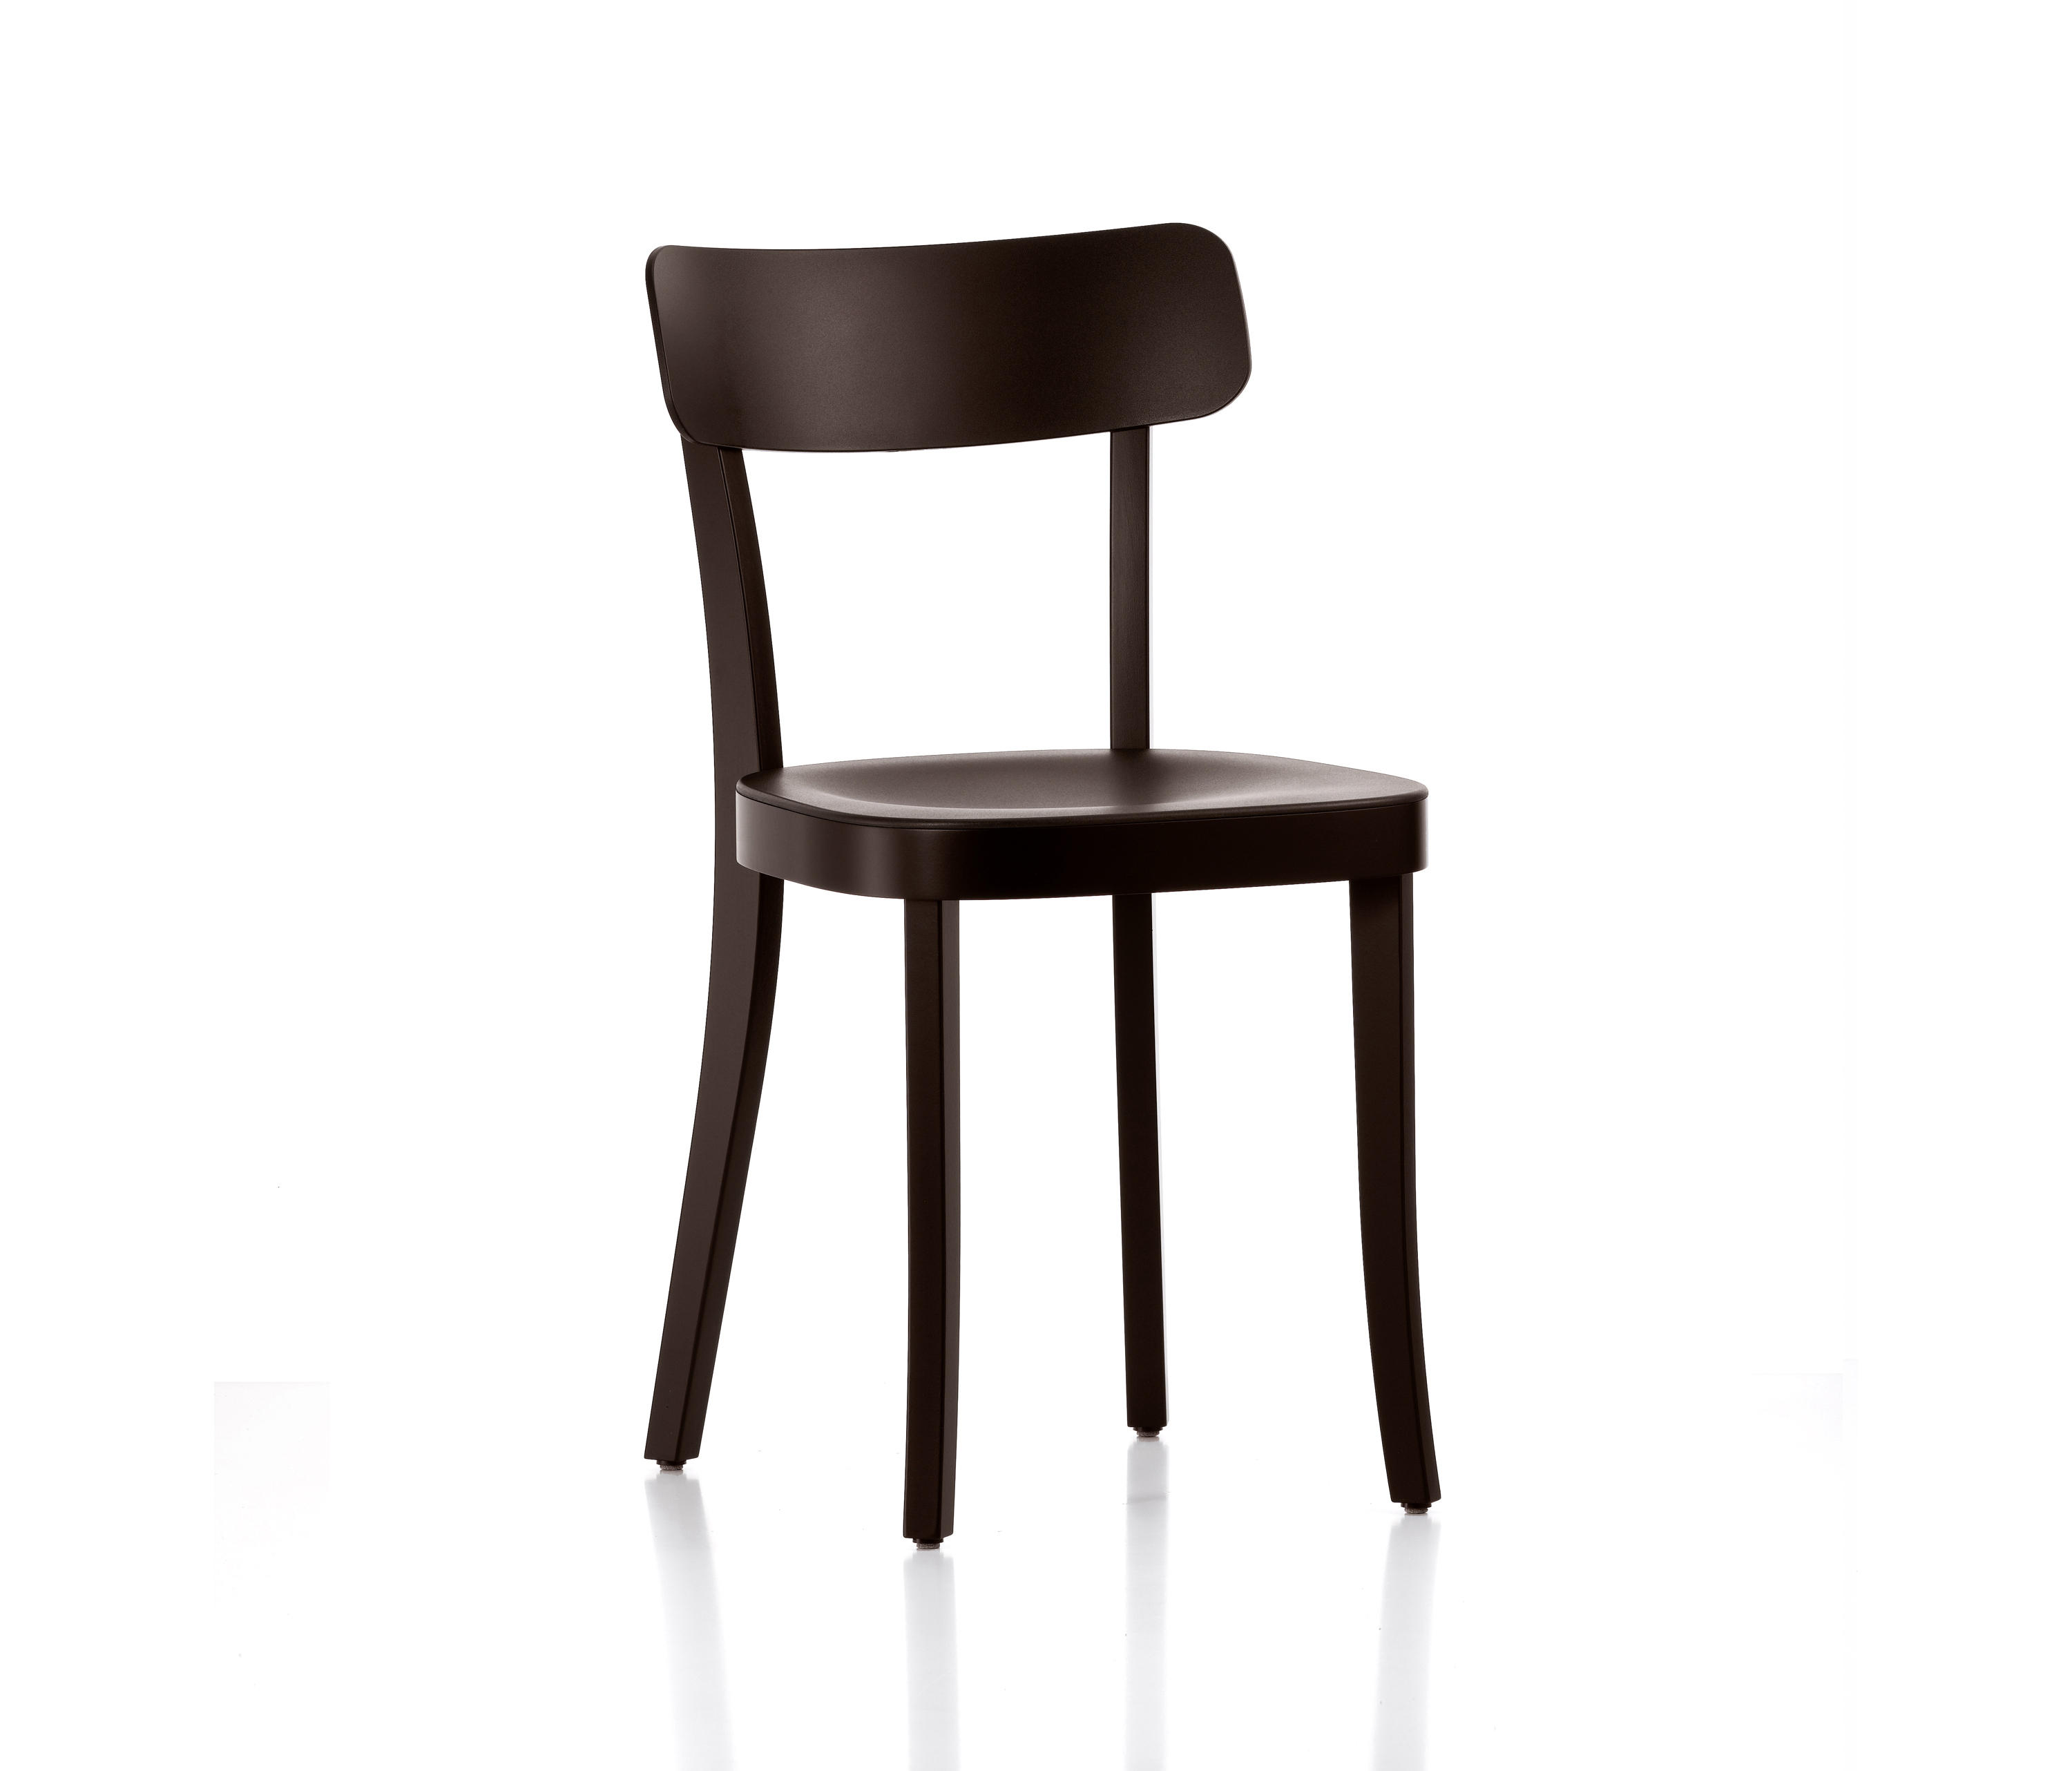 basel chair chairs from vitra architonic. Black Bedroom Furniture Sets. Home Design Ideas